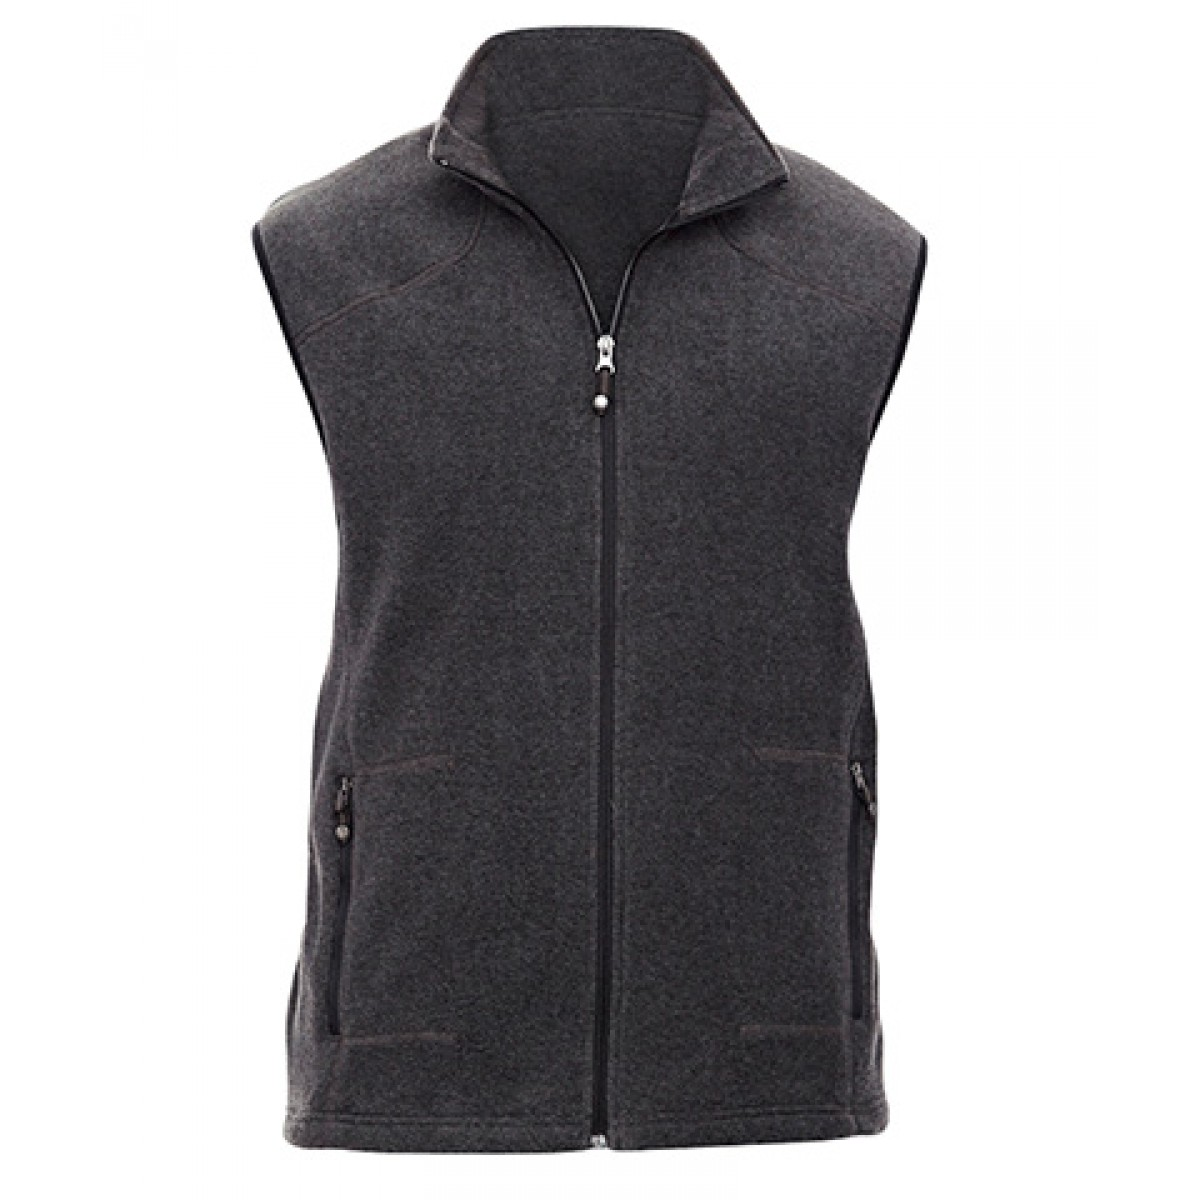 Men's Voyage Fleece Vest-Gray -M